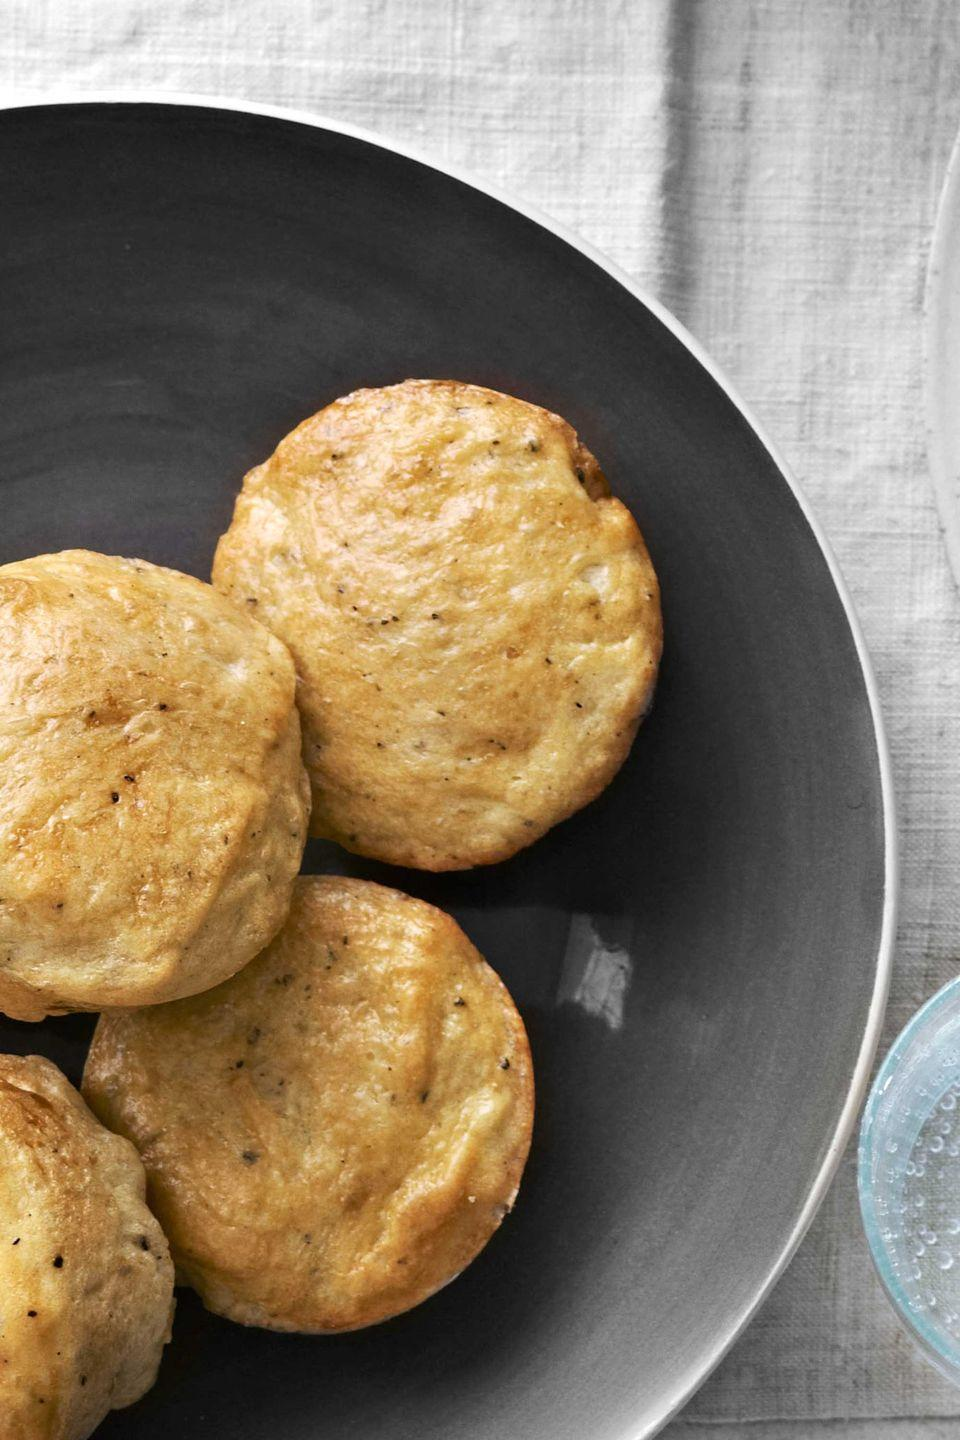 "<p>A hint of spicy black pepper adds a kick to these traditional dinner rolls.</p><p><strong><a href=""https://www.countryliving.com/food-drinks/recipes/a4256/cracked-pepper-dinner-rolls-recipe-clv1112/"" rel=""nofollow noopener"" target=""_blank"" data-ylk=""slk:Get the recipe"" class=""link rapid-noclick-resp"">Get the recipe</a>.</strong></p>"